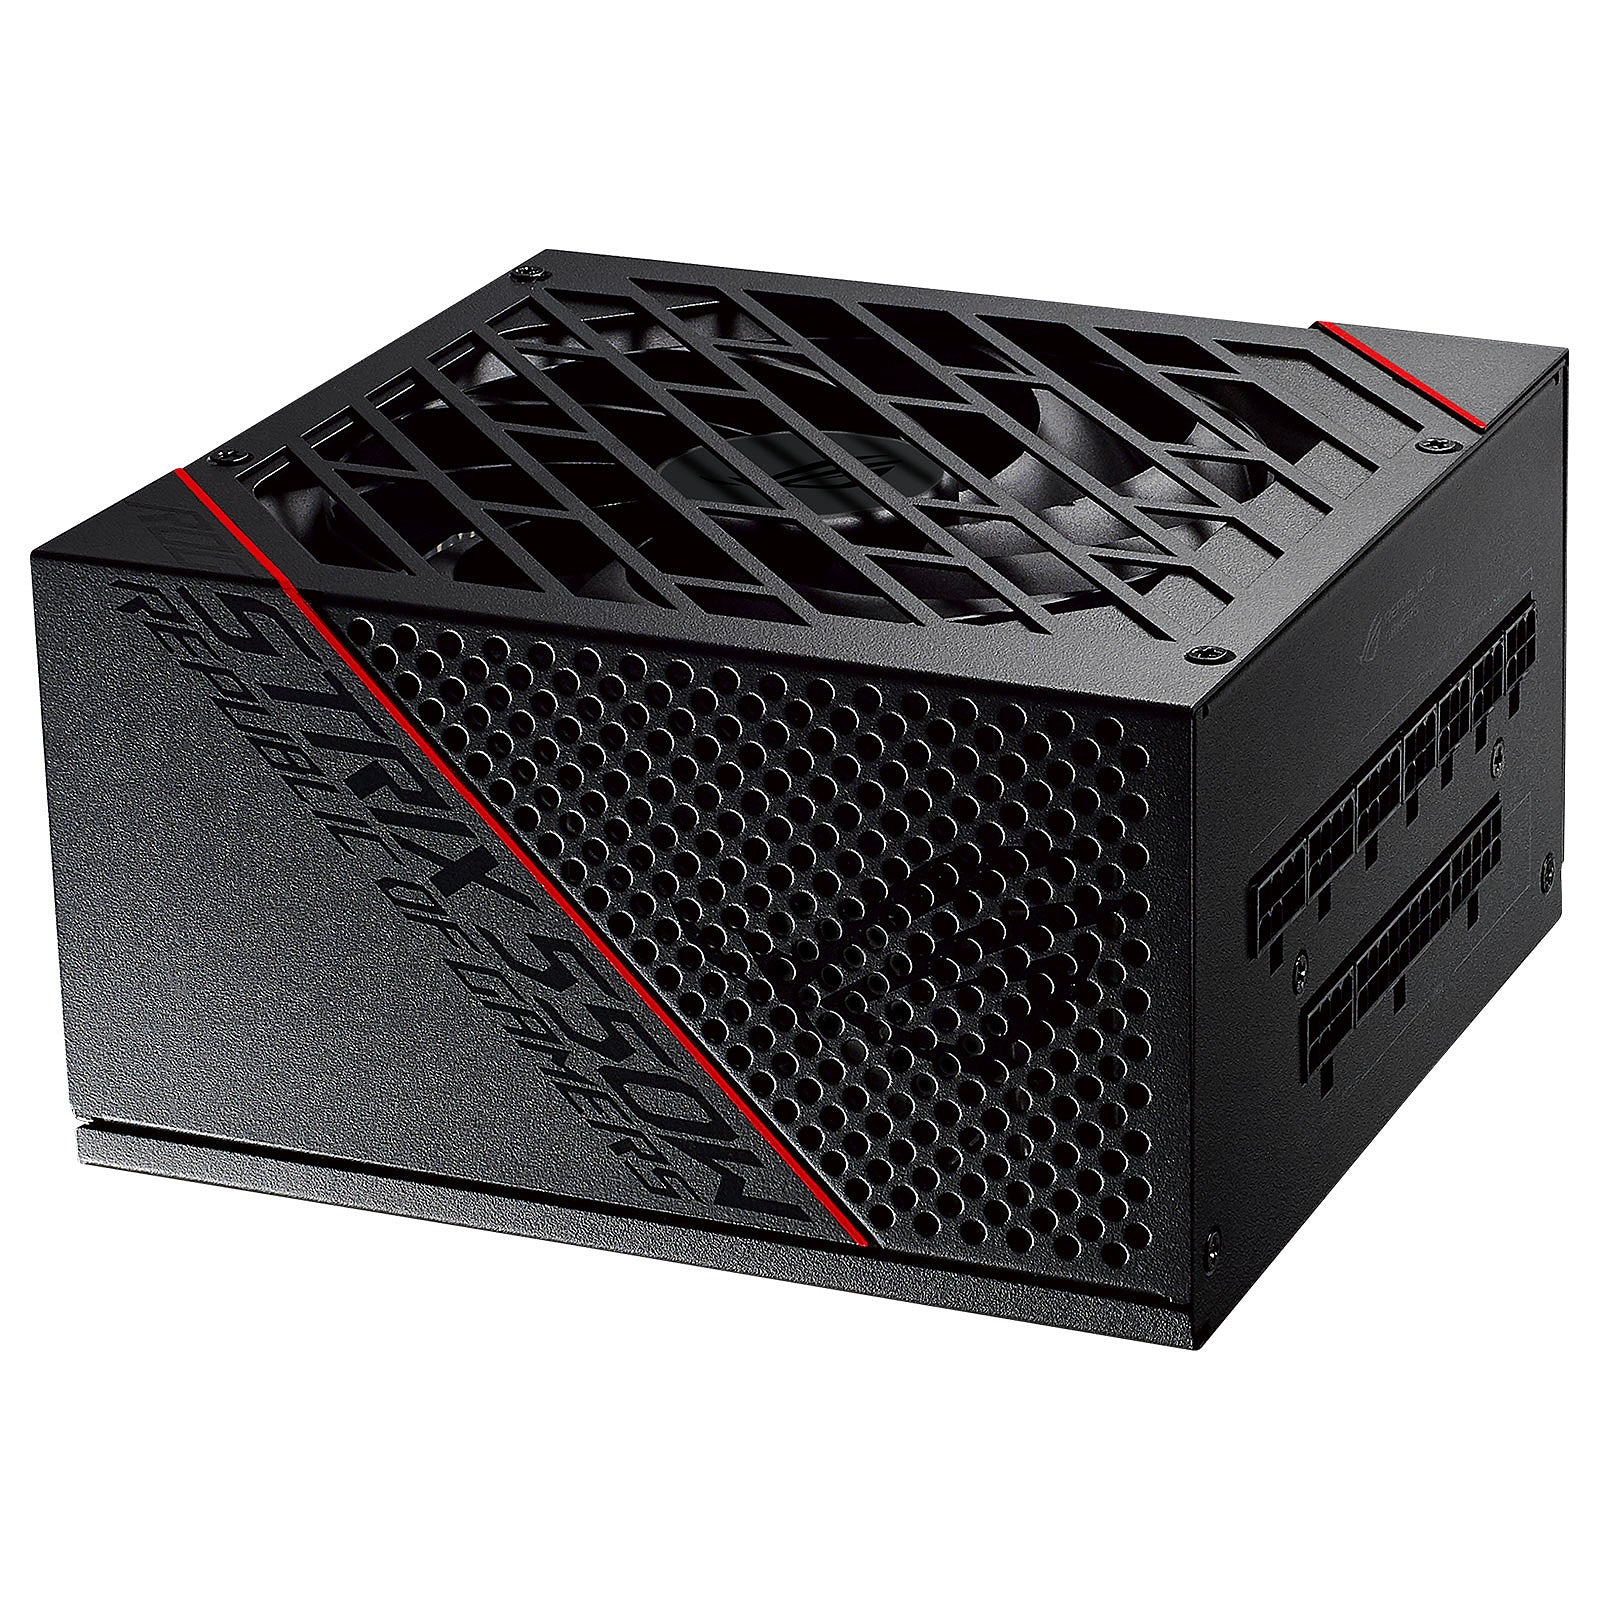 ASUS ROG-STRIX-550G 80PLUS Gold - Alimentation modulaire 550W ATX/EPS 12V - Ventilateur 135 mm - 80PLUS Gold